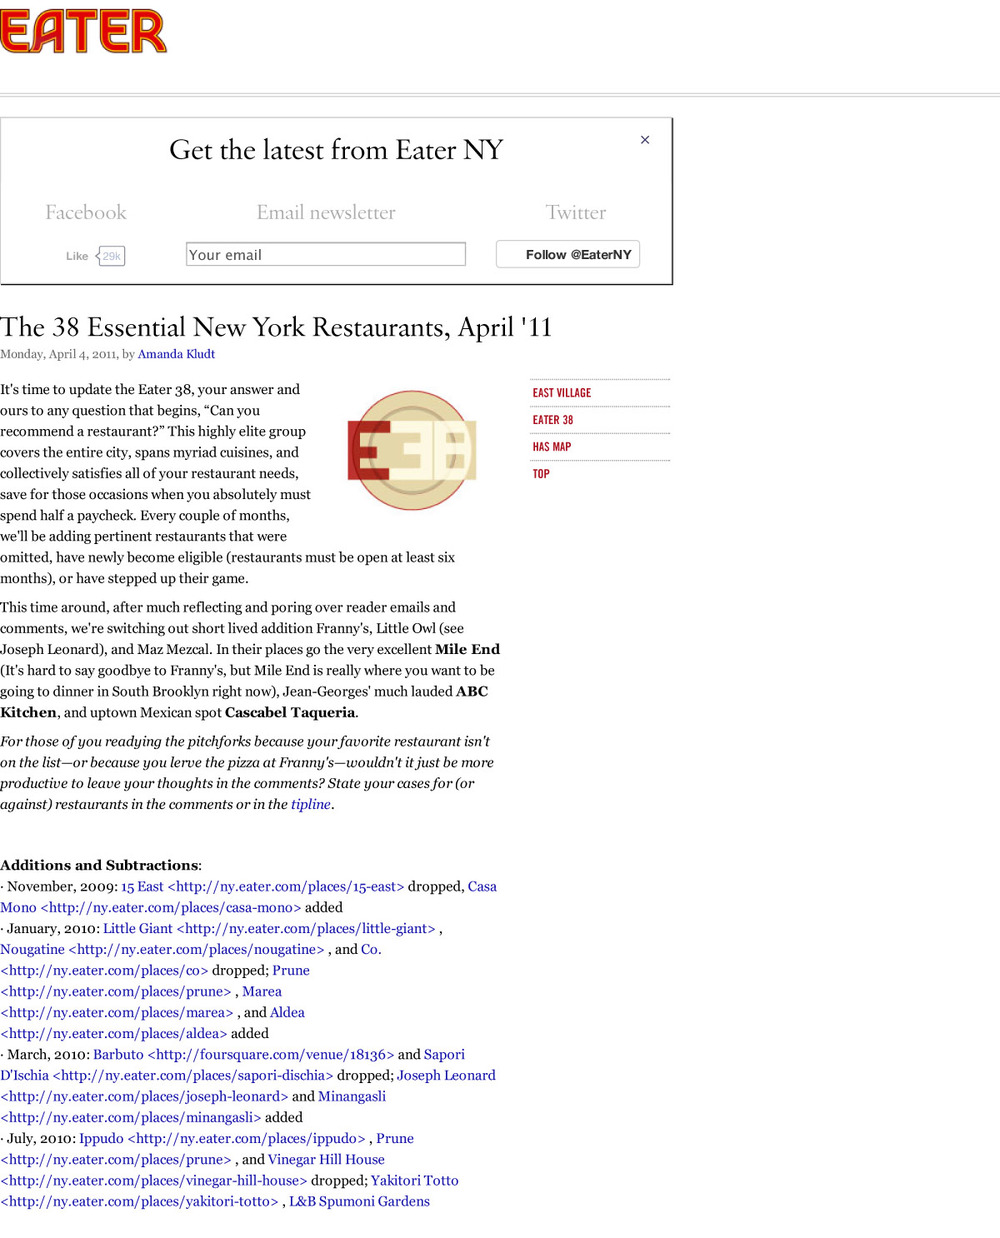 The 38 Essential New York Restaurants, April '11 - Eater 38 - Eater NY-1.jpg